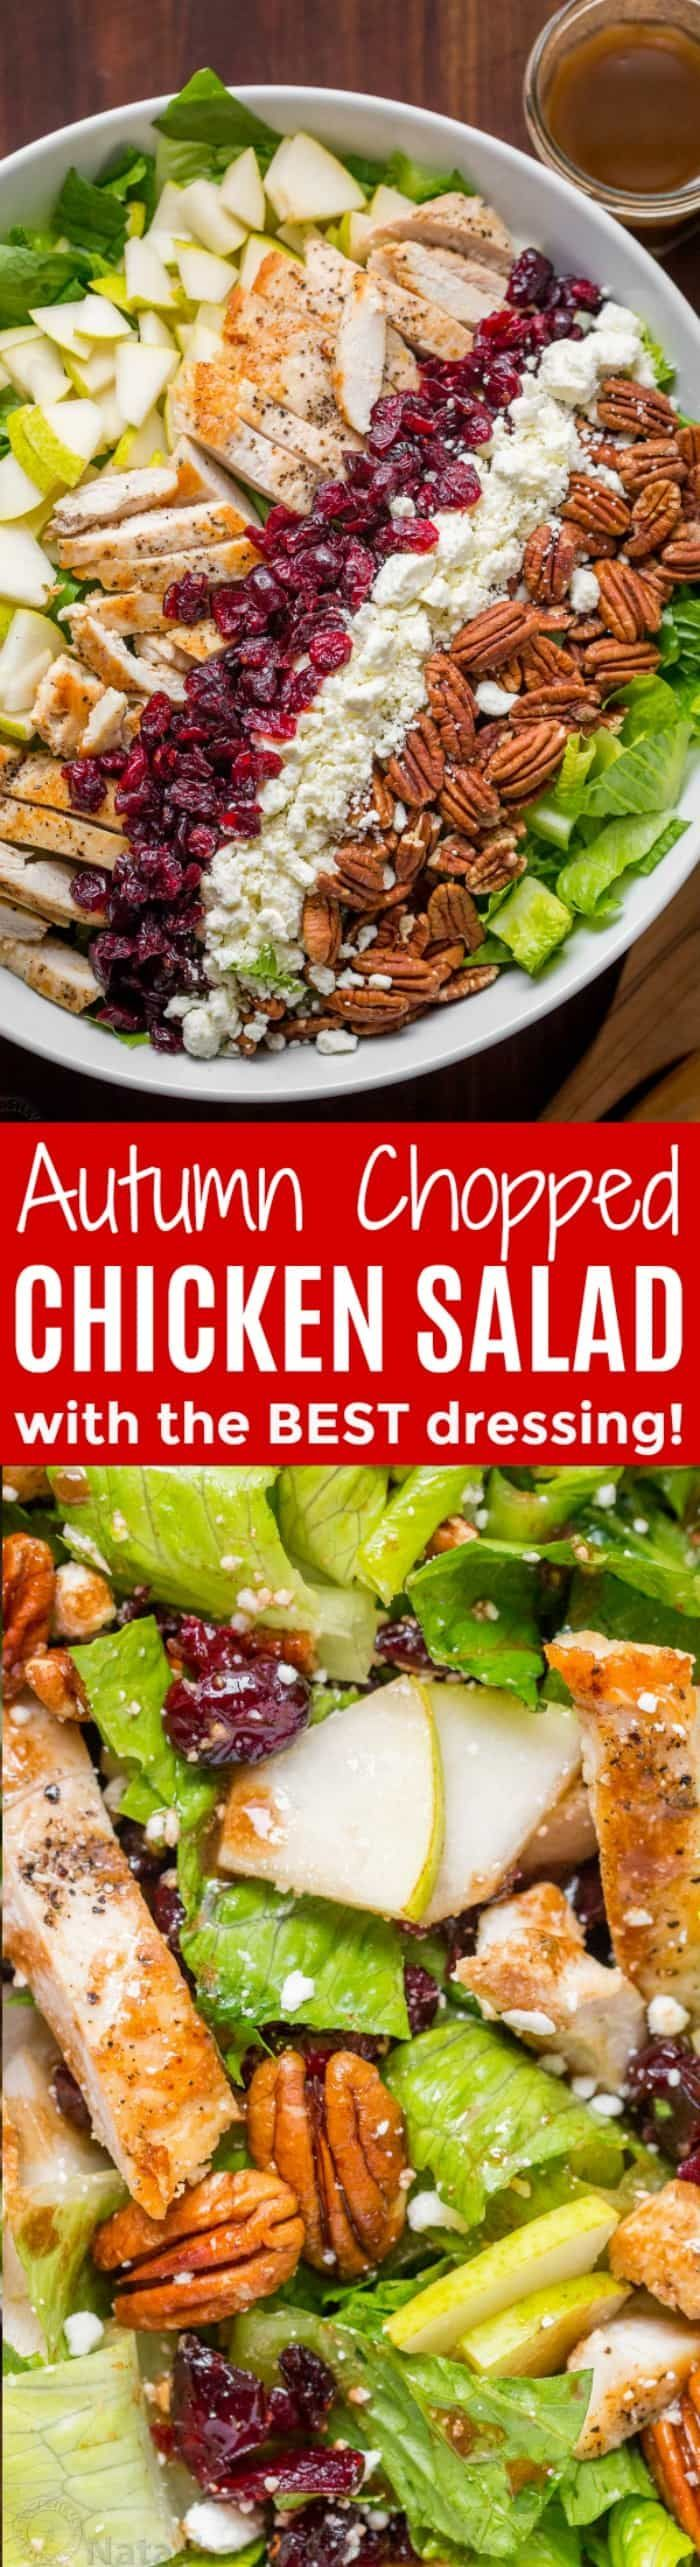 Autumn Chopped Chicken Salad will be your favorite Fall salad. Chicken Salad with pears, craisins, pecans, feta and chicken with easy balsamic vinaigrette!